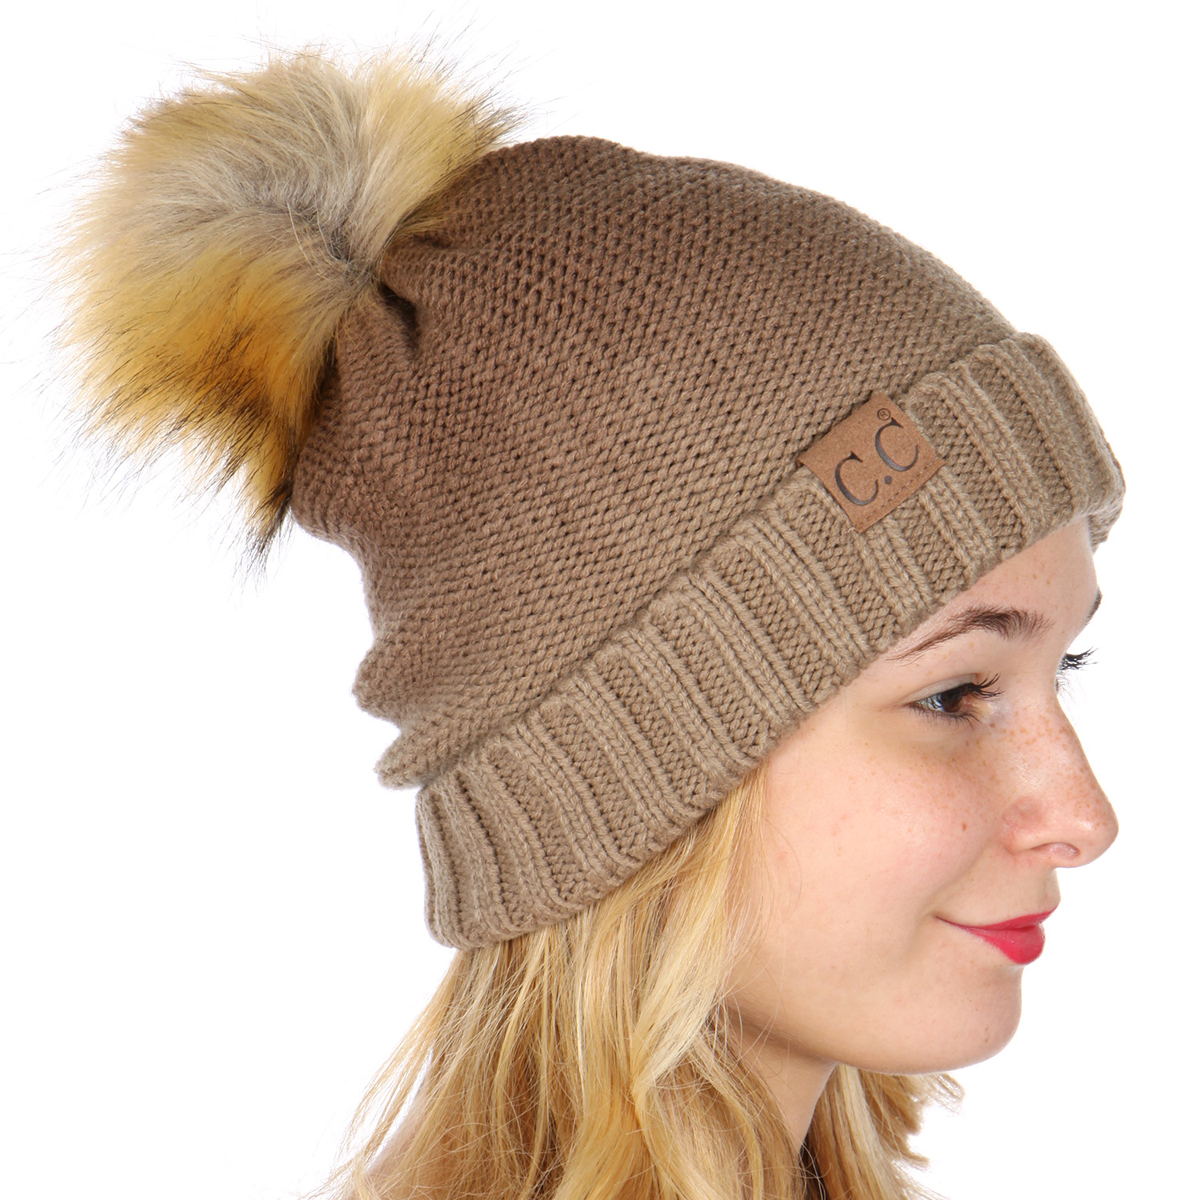 brown-ombre-fold-over-pom-pom-beanie-by-cc-12.jpg ccd29c94192